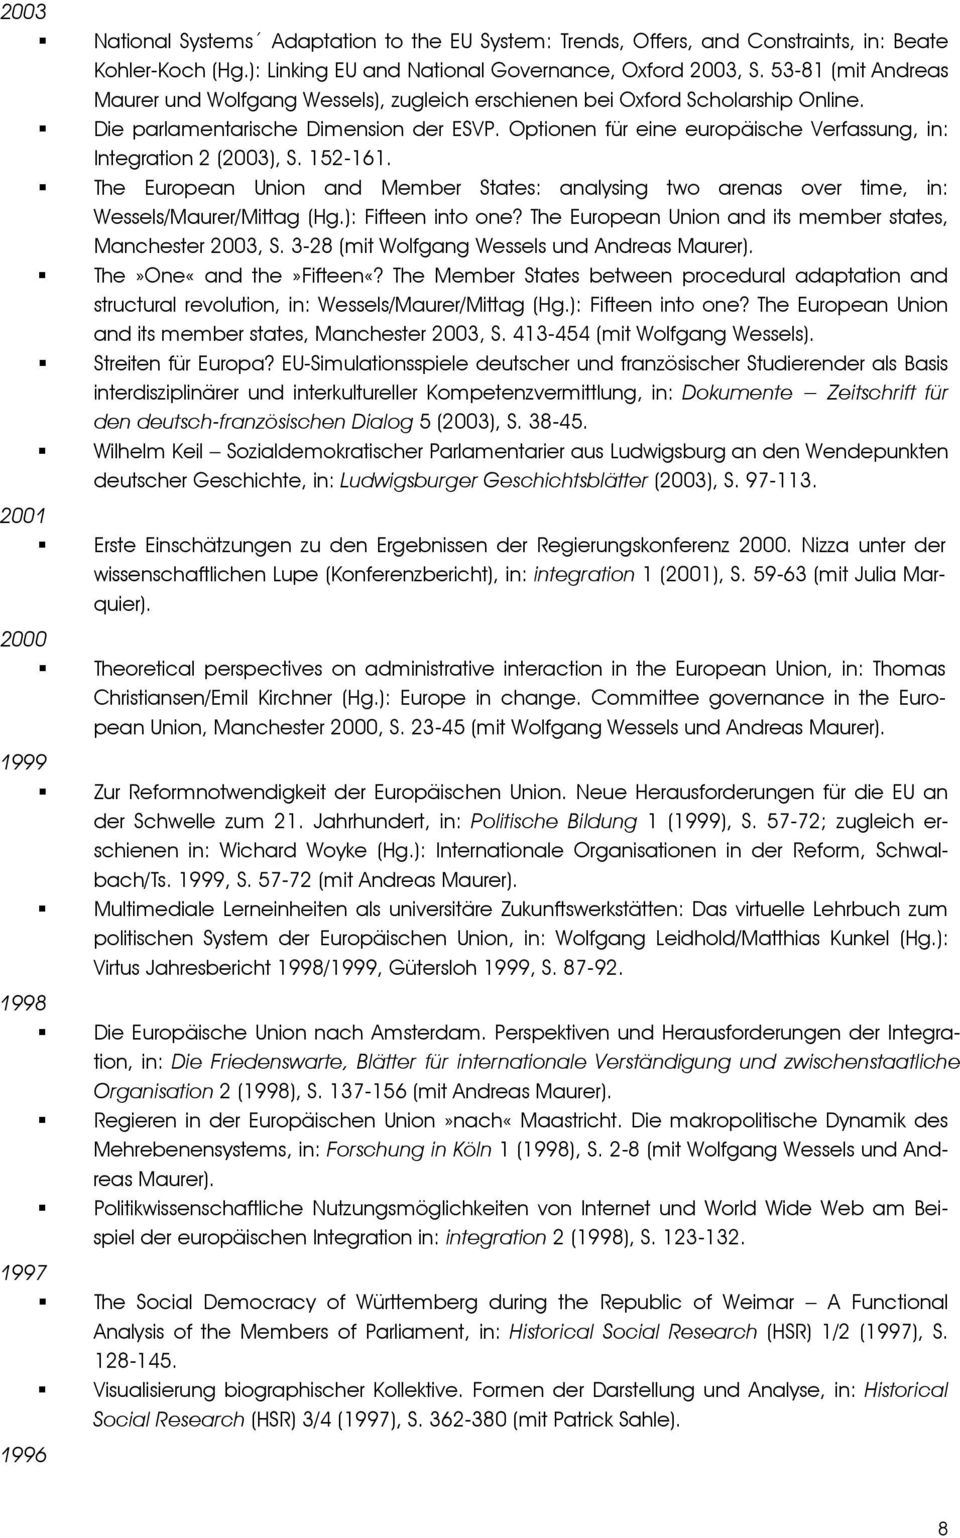 Optionen für eine europäische Verfassung, in: Integration 2 (2003), S. 152-161. The European Union and Member States: analysing two arenas over time, in: Wessels/Maurer/Mittag (Hg.): Fifteen into one?